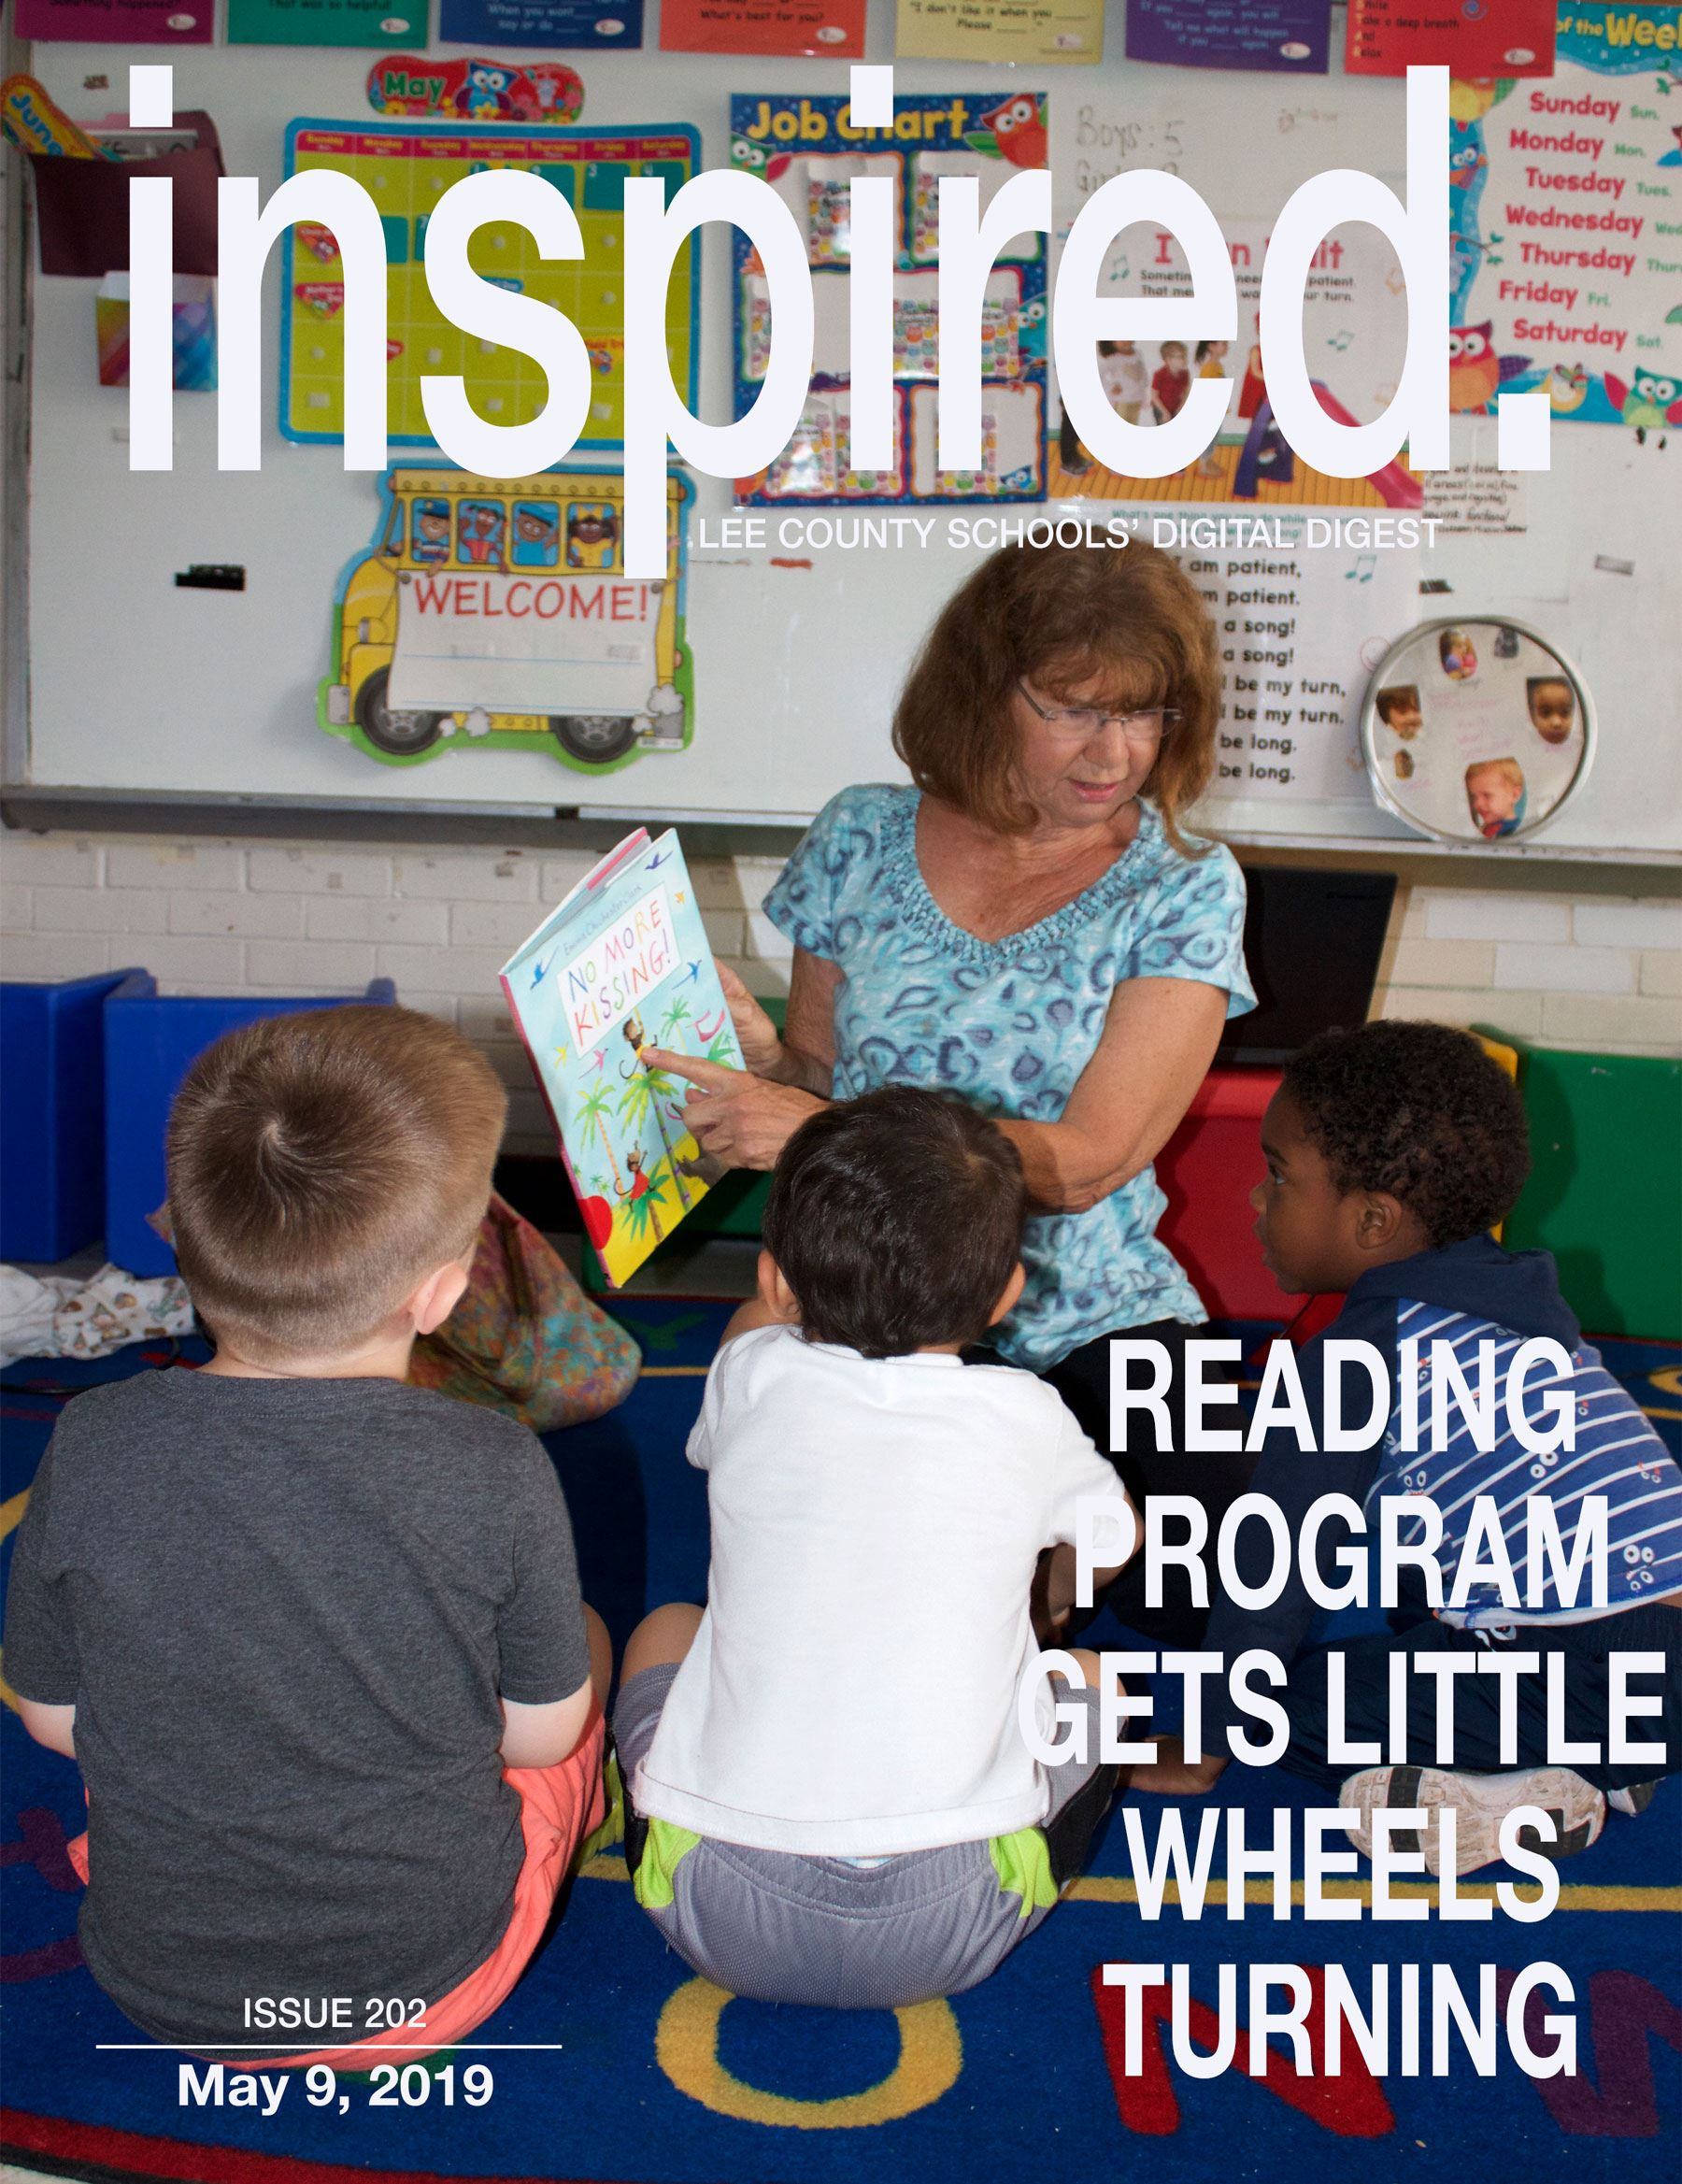 INSPIRED. Reading Program Gets Little Wheels Turning